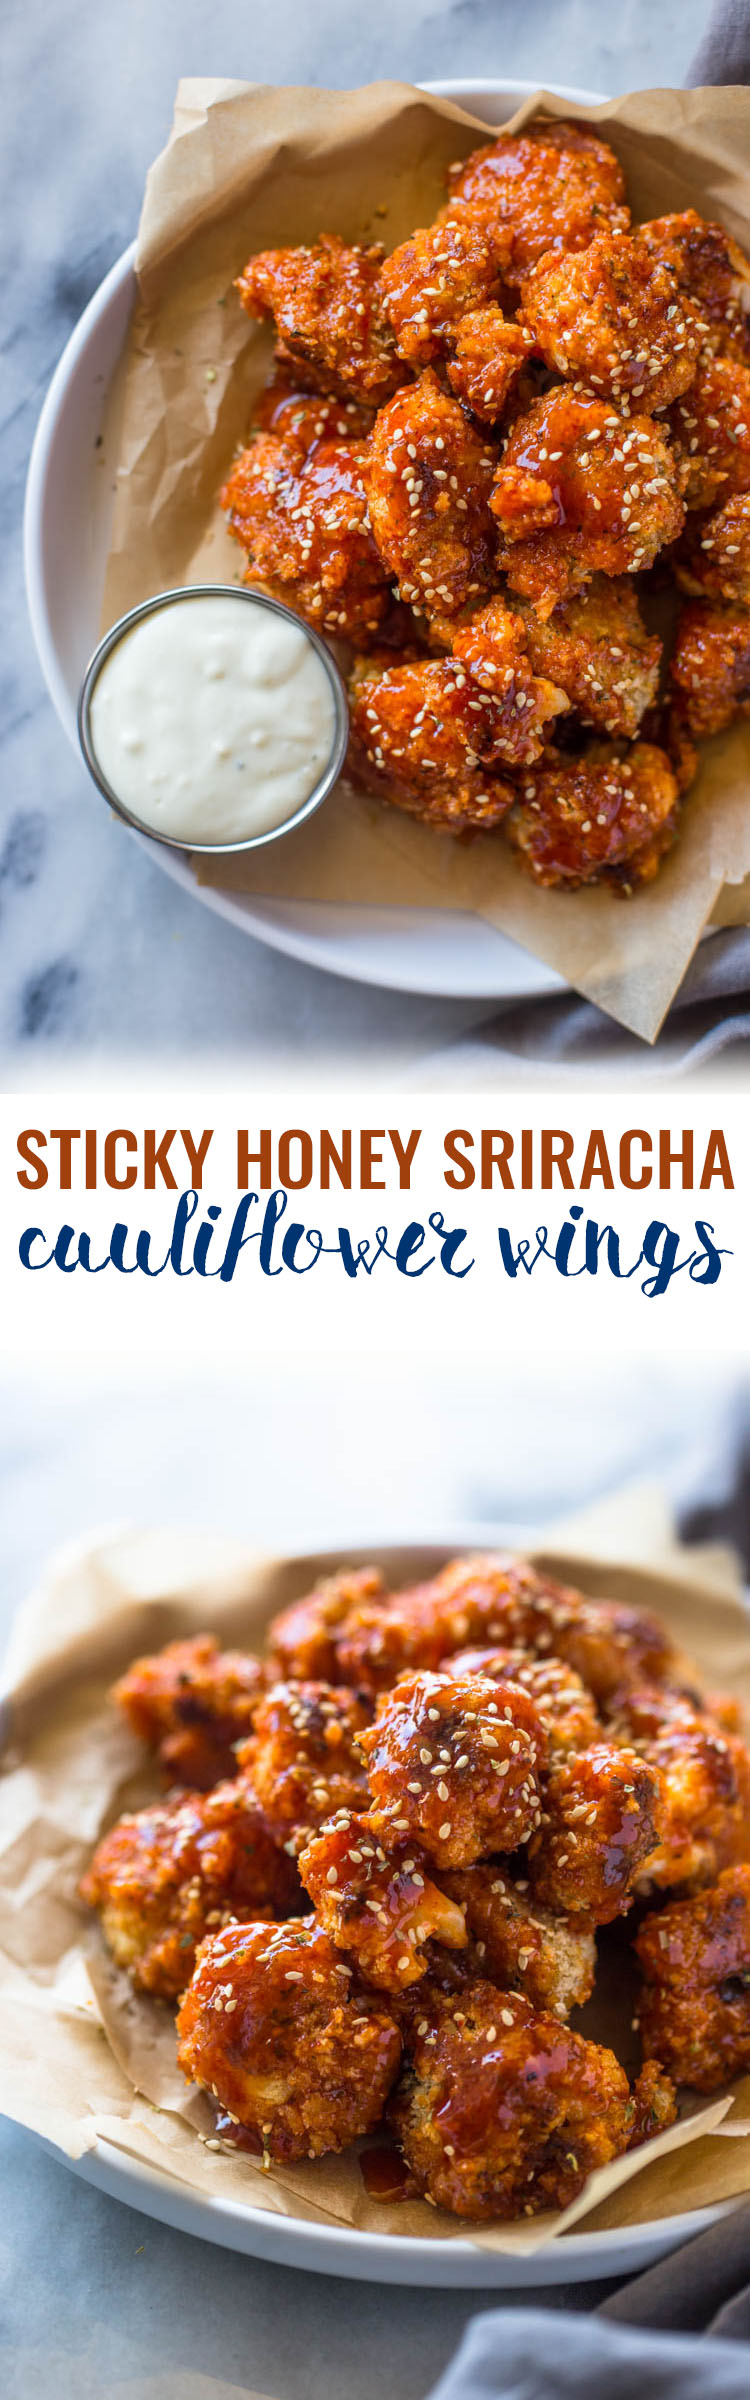 "Sticky Honey Sriracha Cauliflower ""wings"" (Baked or Fried)"